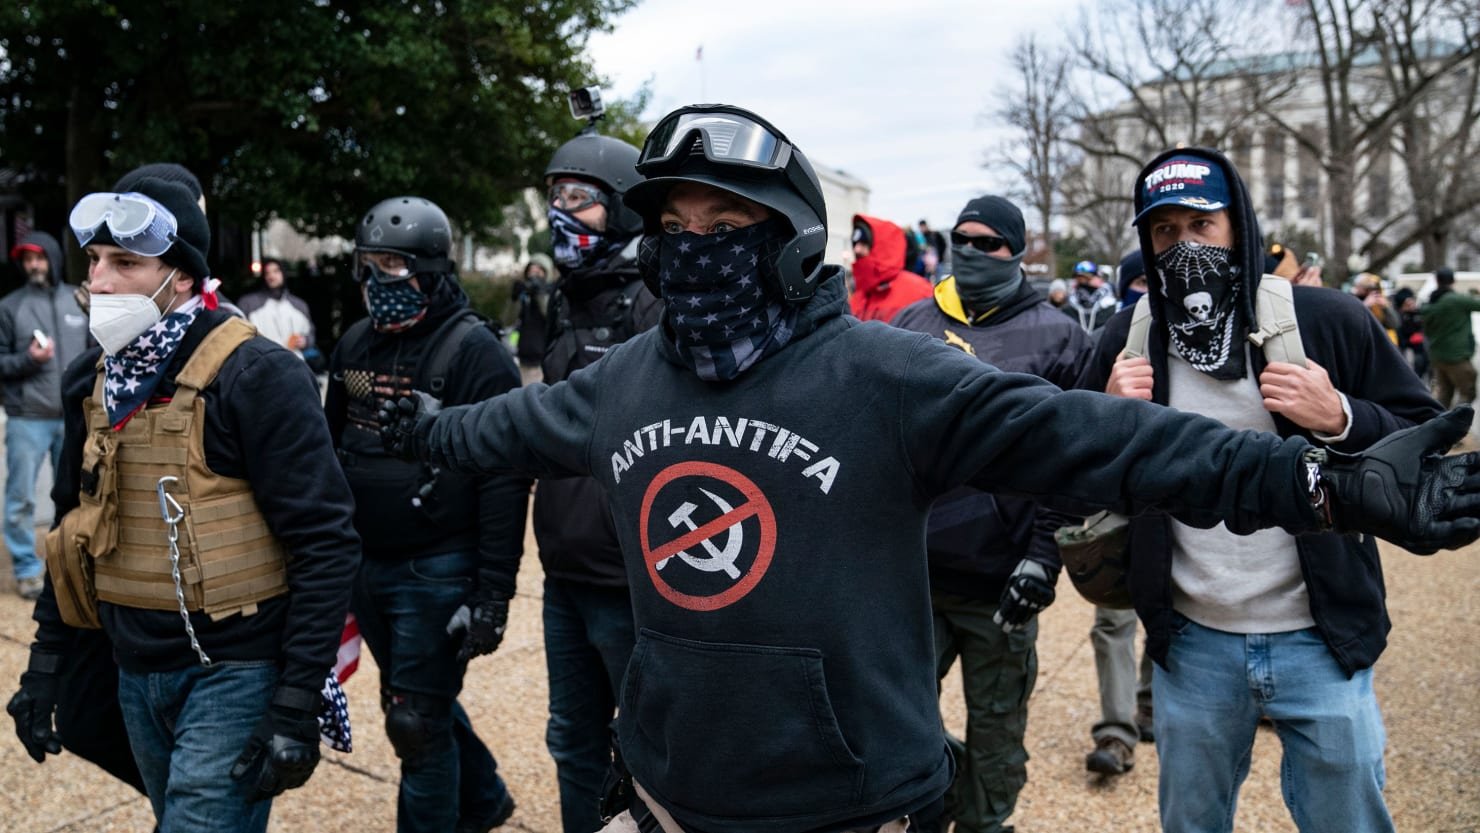 Russian Media Pushes the Lie That Capitol Rioters Were Antifa